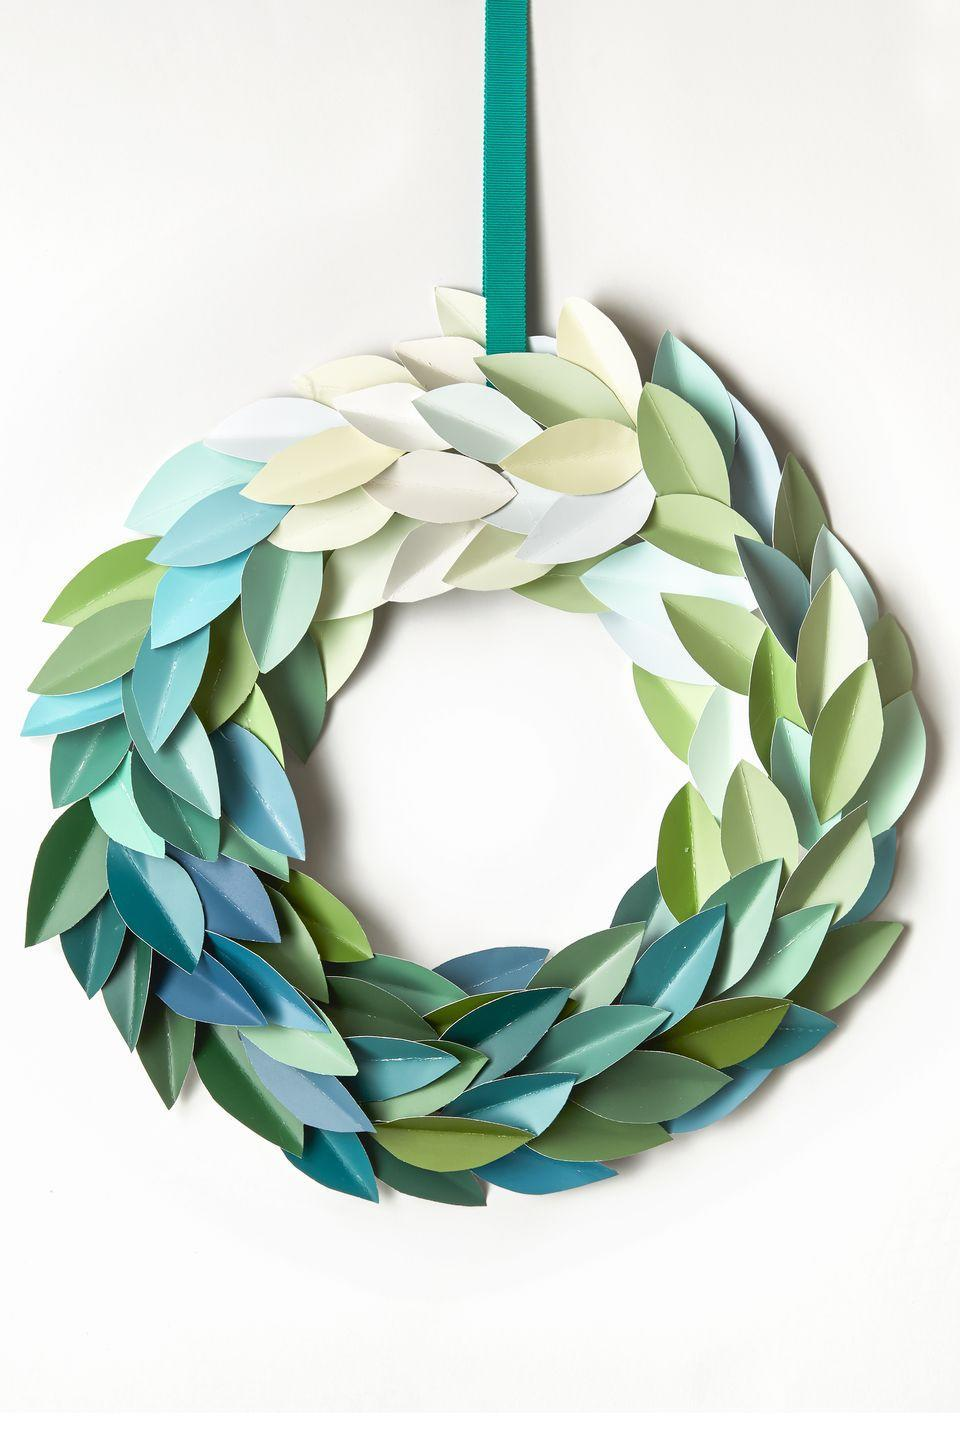 """<p>Snag 40 paint chips (usually free at the paint store) and grab a pair of scissors for this colorful DIY. Cut leaf shapes out of the swatches, crease them in the middle, hot-glue onto a <a href=""""https://www.amazon.com/FloraCraft-SimpleStyle-Wreath-Green-Gauge/dp/B00BTDBLE6/?tag=syn-yahoo-20&ascsubtag=%5Bartid%7C10055.g.2996%5Bsrc%7Cyahoo-us"""" rel=""""nofollow noopener"""" target=""""_blank"""" data-ylk=""""slk:wire wreath frame"""" class=""""link rapid-noclick-resp"""">wire wreath frame</a>, and voila: a door decoration that <em>won't </em>shed needles all over your stoop.</p><p><strong>RELATED:</strong> <a href=""""https://www.goodhousekeeping.com/home/craft-ideas/how-to/g814/paint-chip-crafts/"""" rel=""""nofollow noopener"""" target=""""_blank"""" data-ylk=""""slk:Clever Crafts to Make with Leftover Paint Chips"""" class=""""link rapid-noclick-resp"""">Clever Crafts to Make with Leftover Paint Chips</a></p>"""